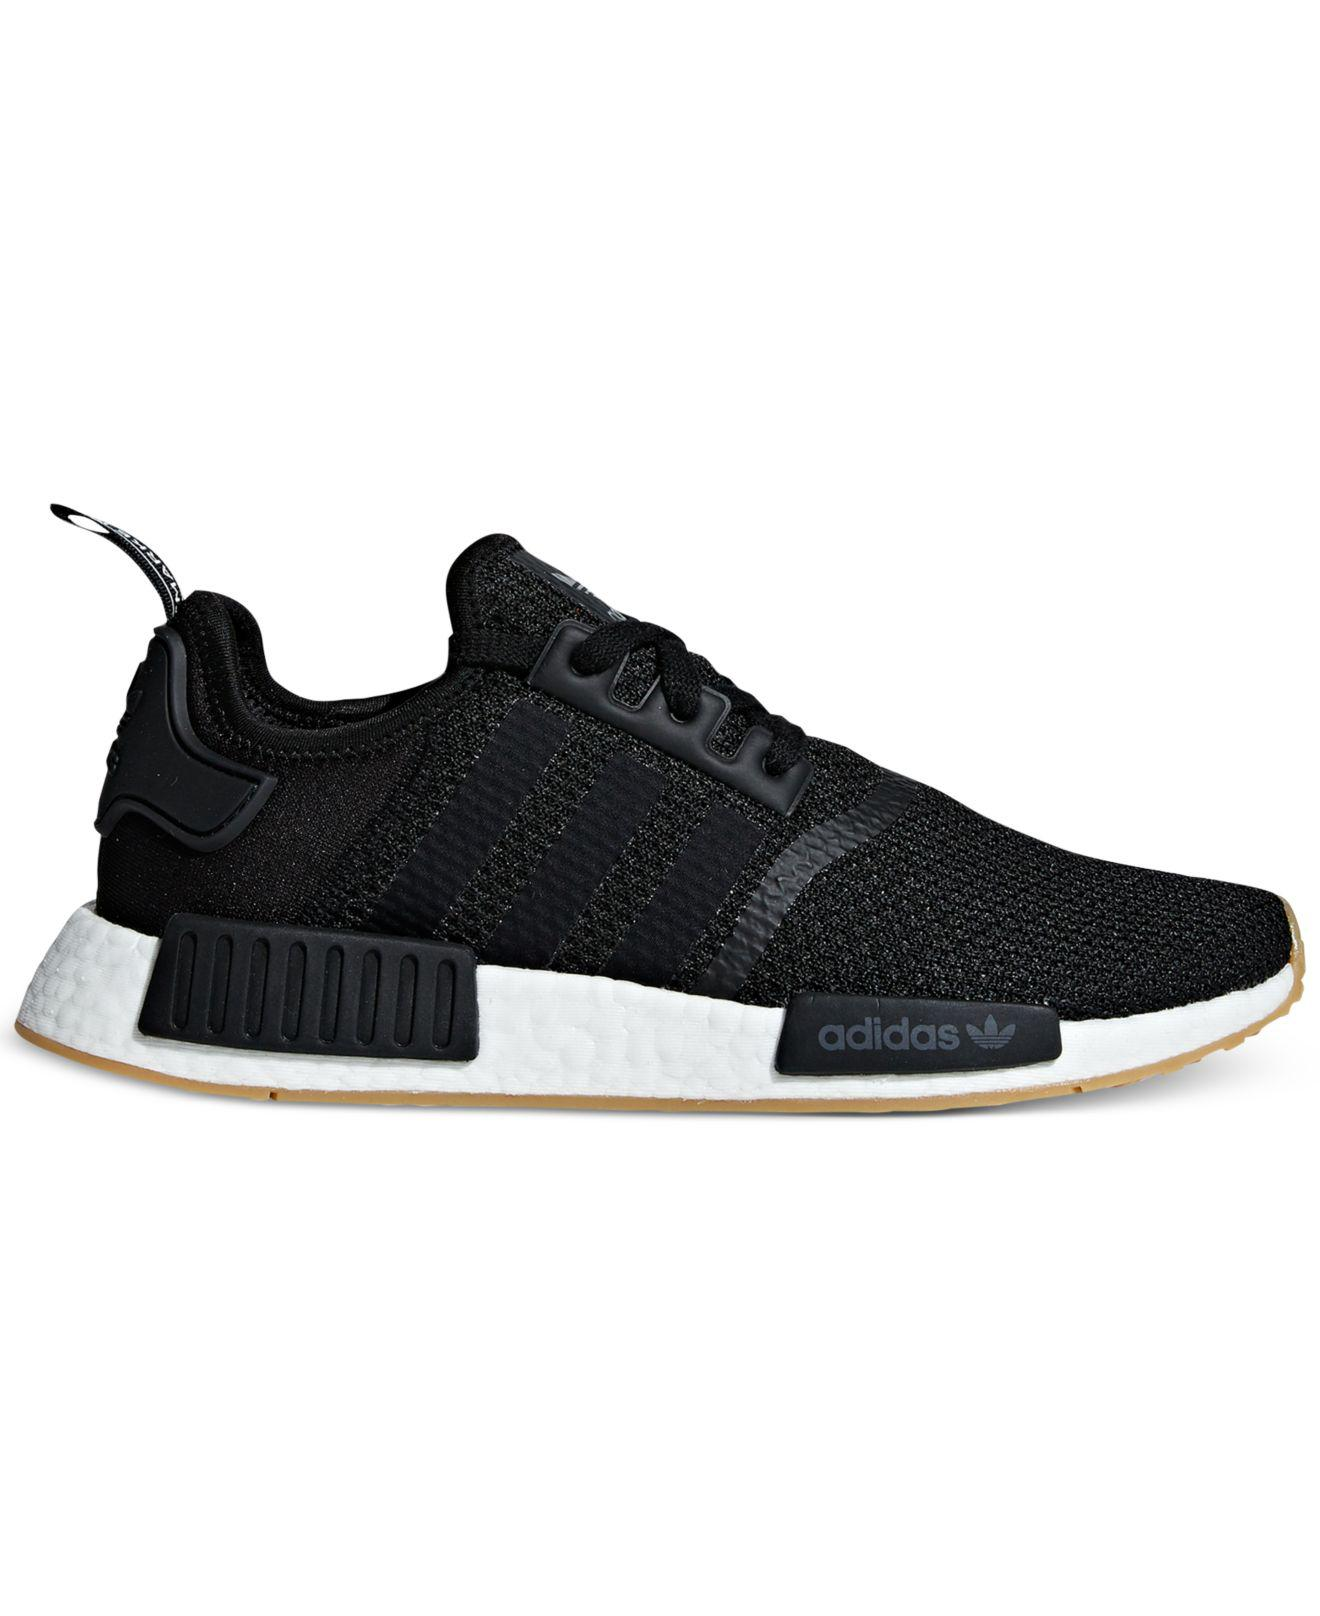 22941c921 Adidas - Black Nmd R1 Casual Sneakers From Finish Line for Men - Lyst. View  fullscreen